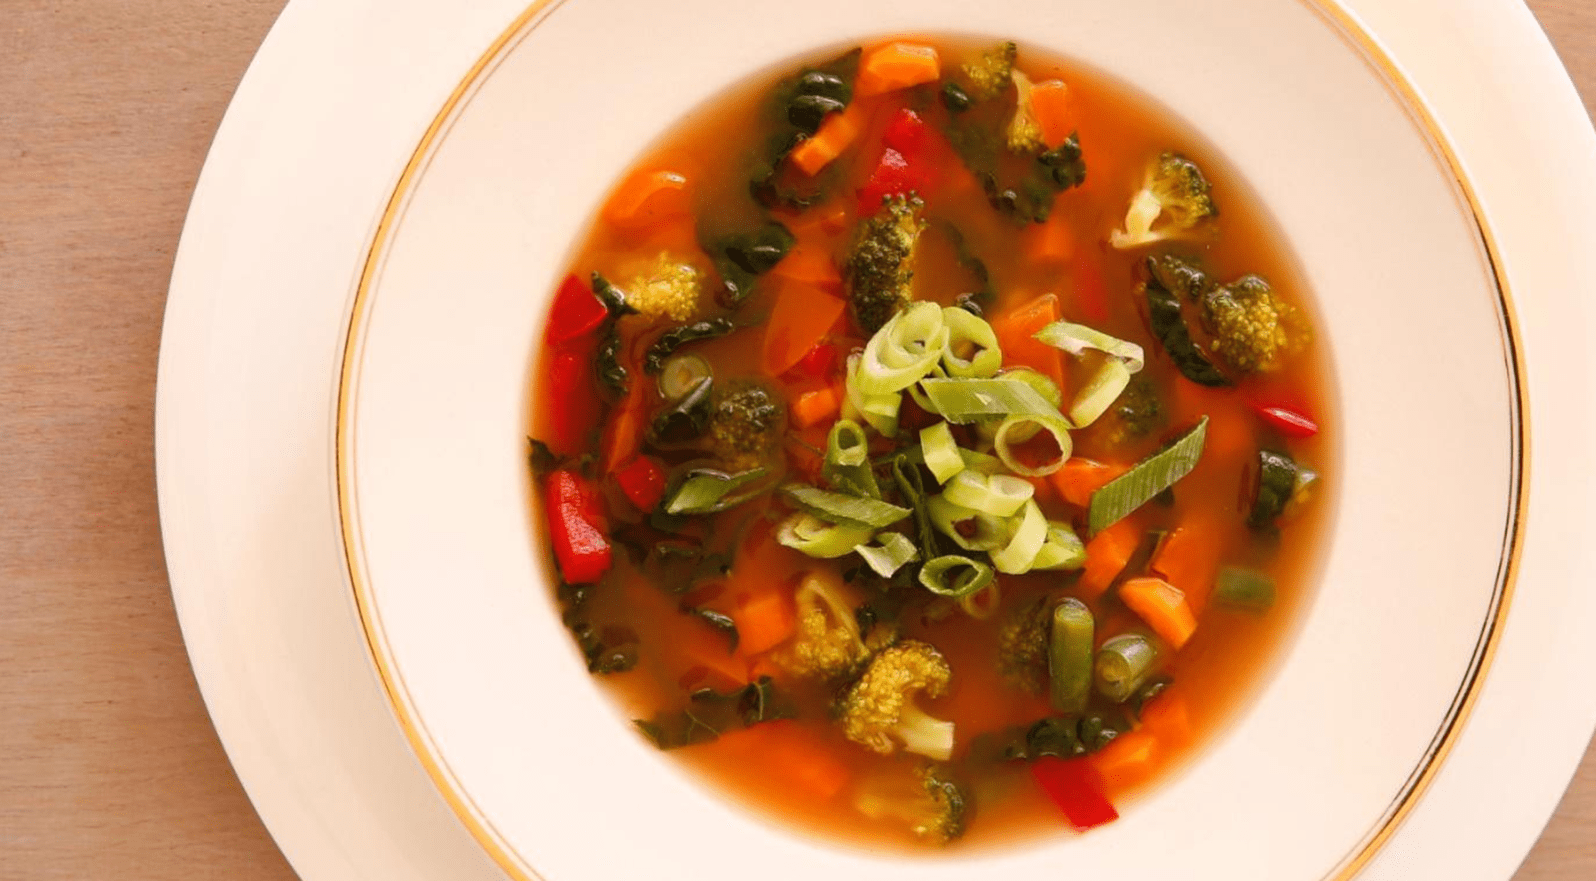 Pauline's New Year Vegetable Soup